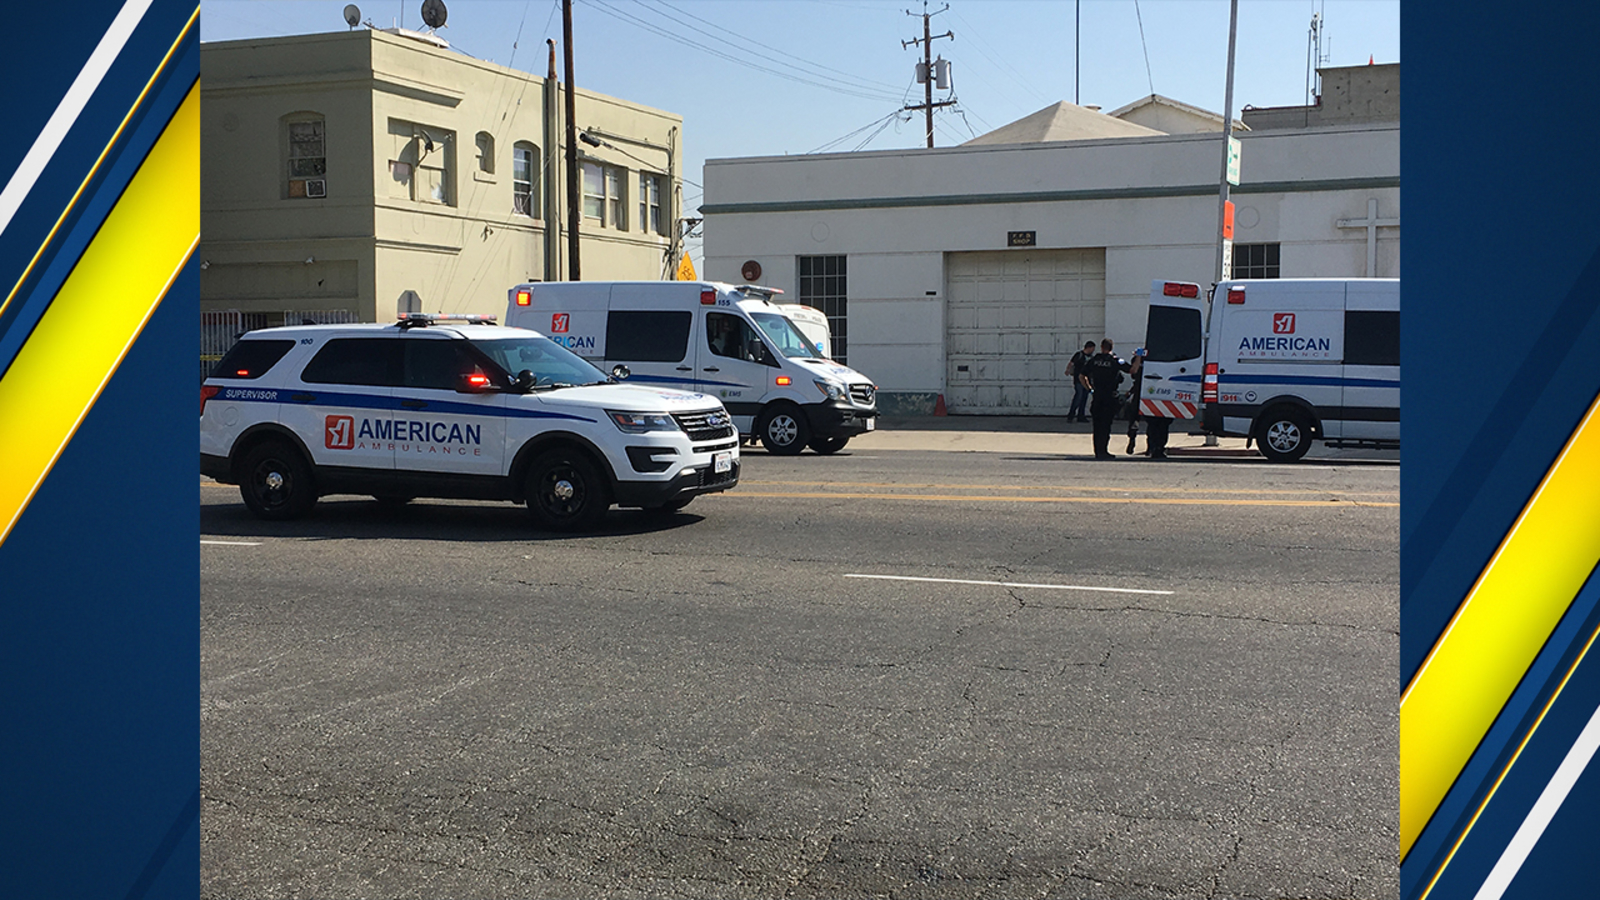 Police investigating after 2 people stabbed in downtown Fresno